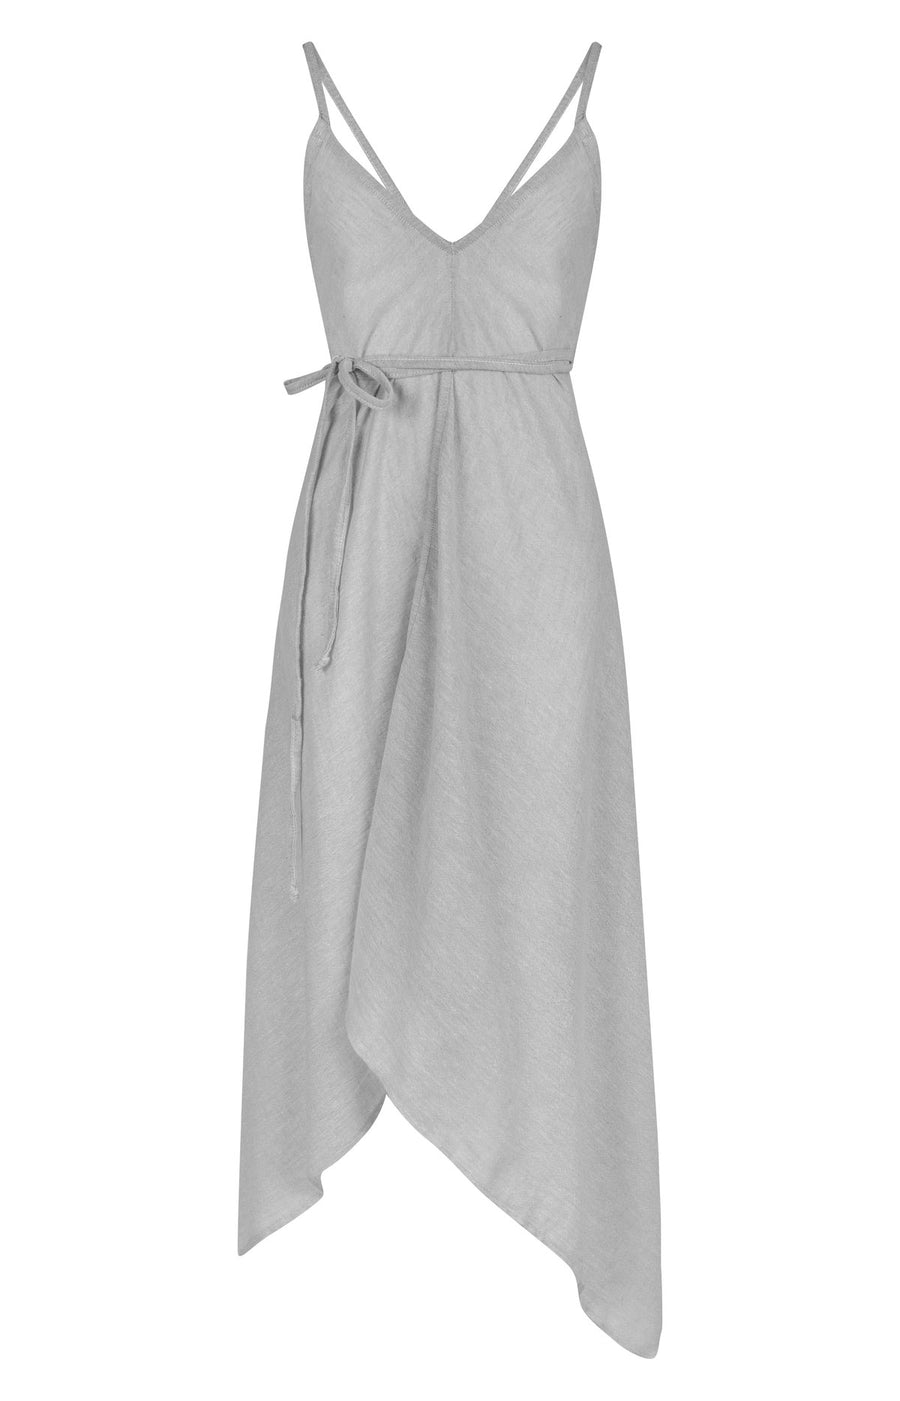 The Sage Maxi Dress in Grey